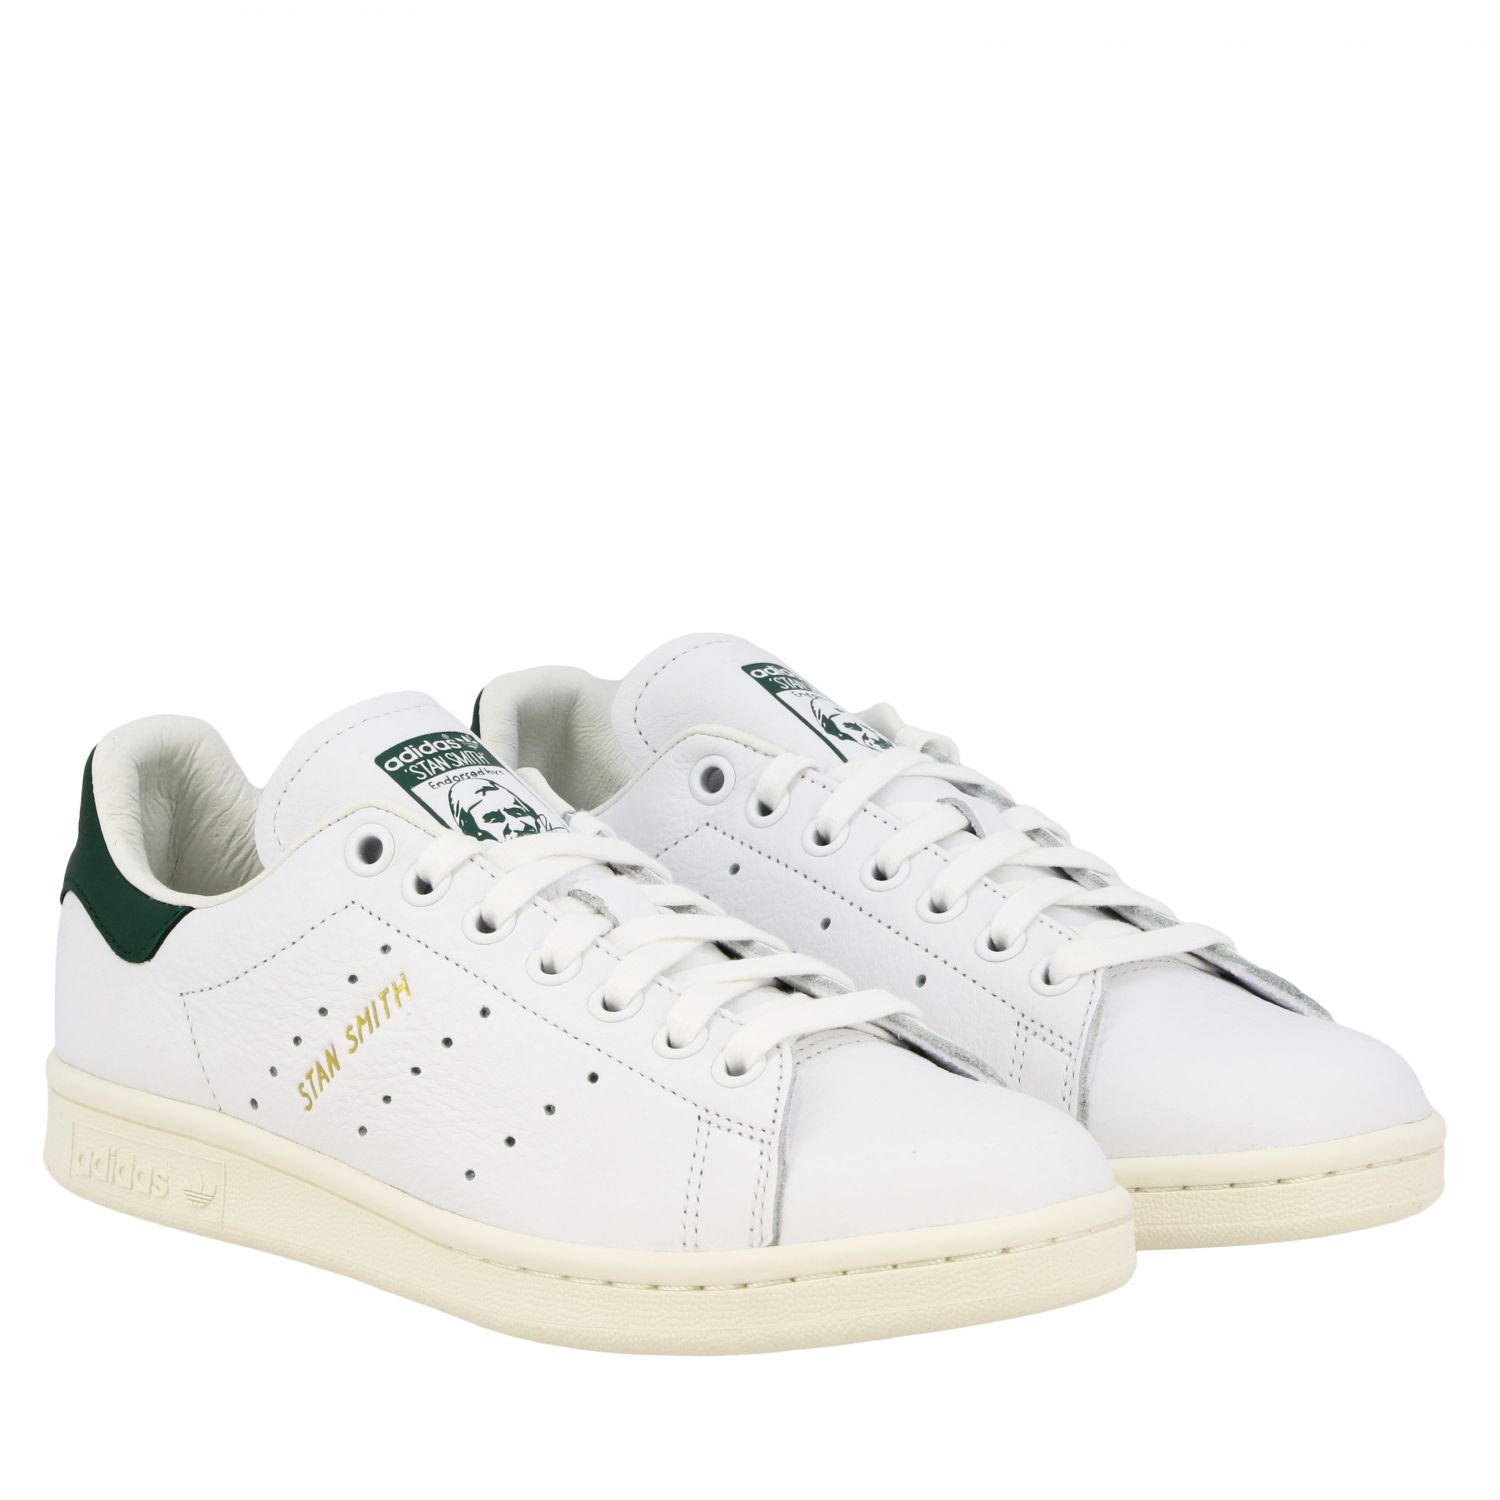 Sneakers Adidas Originals: Sneakers Stan smith Adidas Originals in pelle bianco 2